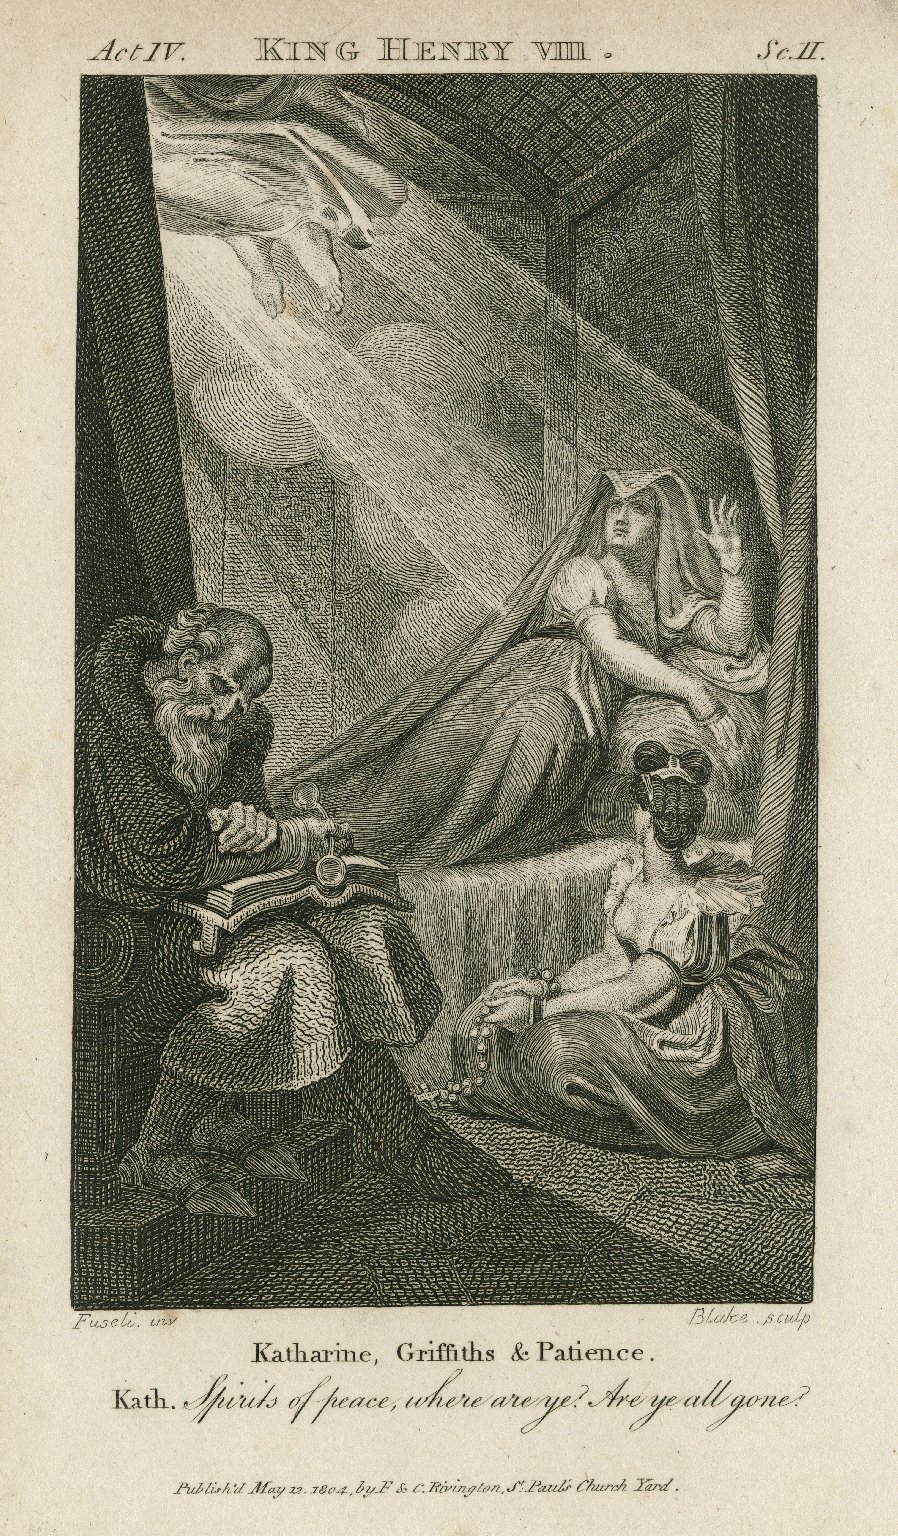 King Henry VIII, act IV, sc. II ... Spirits of peace, where are ye? Are ye all gone? [graphic] / [Henry] Fuseli, inv. ; William Blake, sculp.